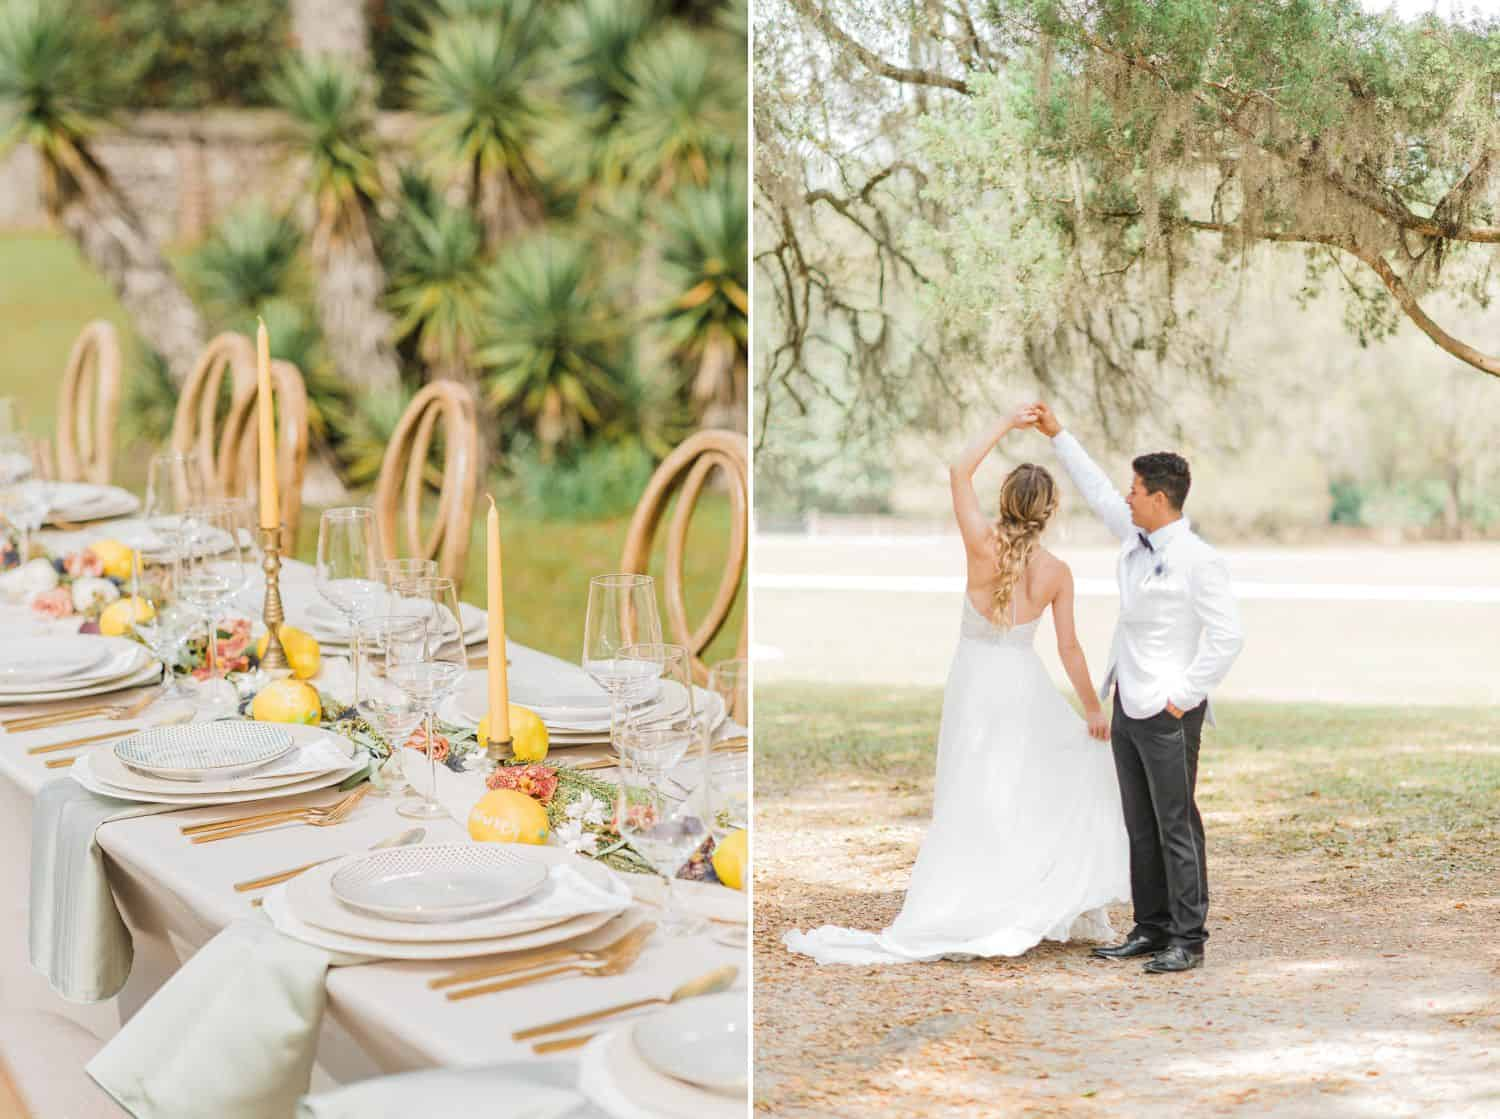 Southern Outdoor Wedding Reception: Get Photography Clients with Styled Shoots